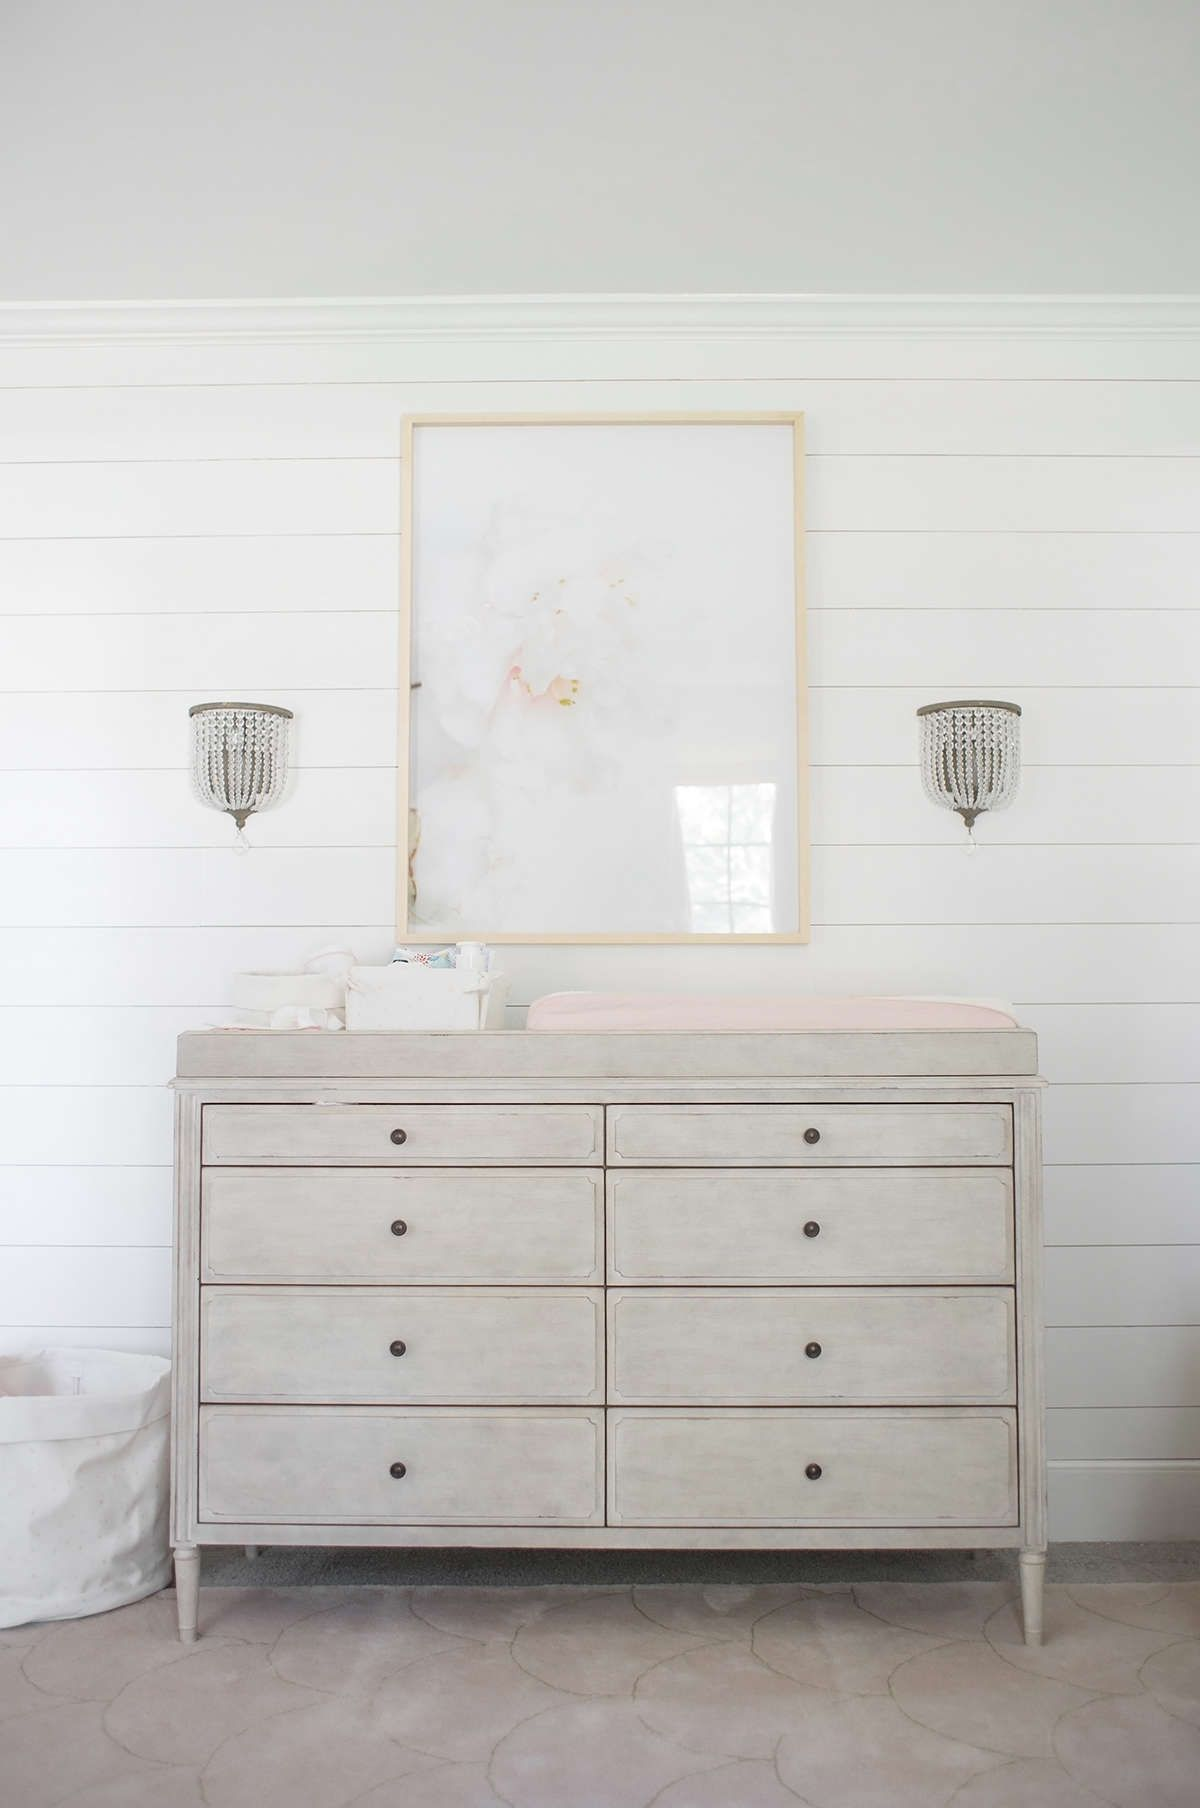 lay baby lay classic, polished pink nursery reveal. featuring our marcelle wide dresser & topper, pink star canvas storage and dauphine crystal sconces.